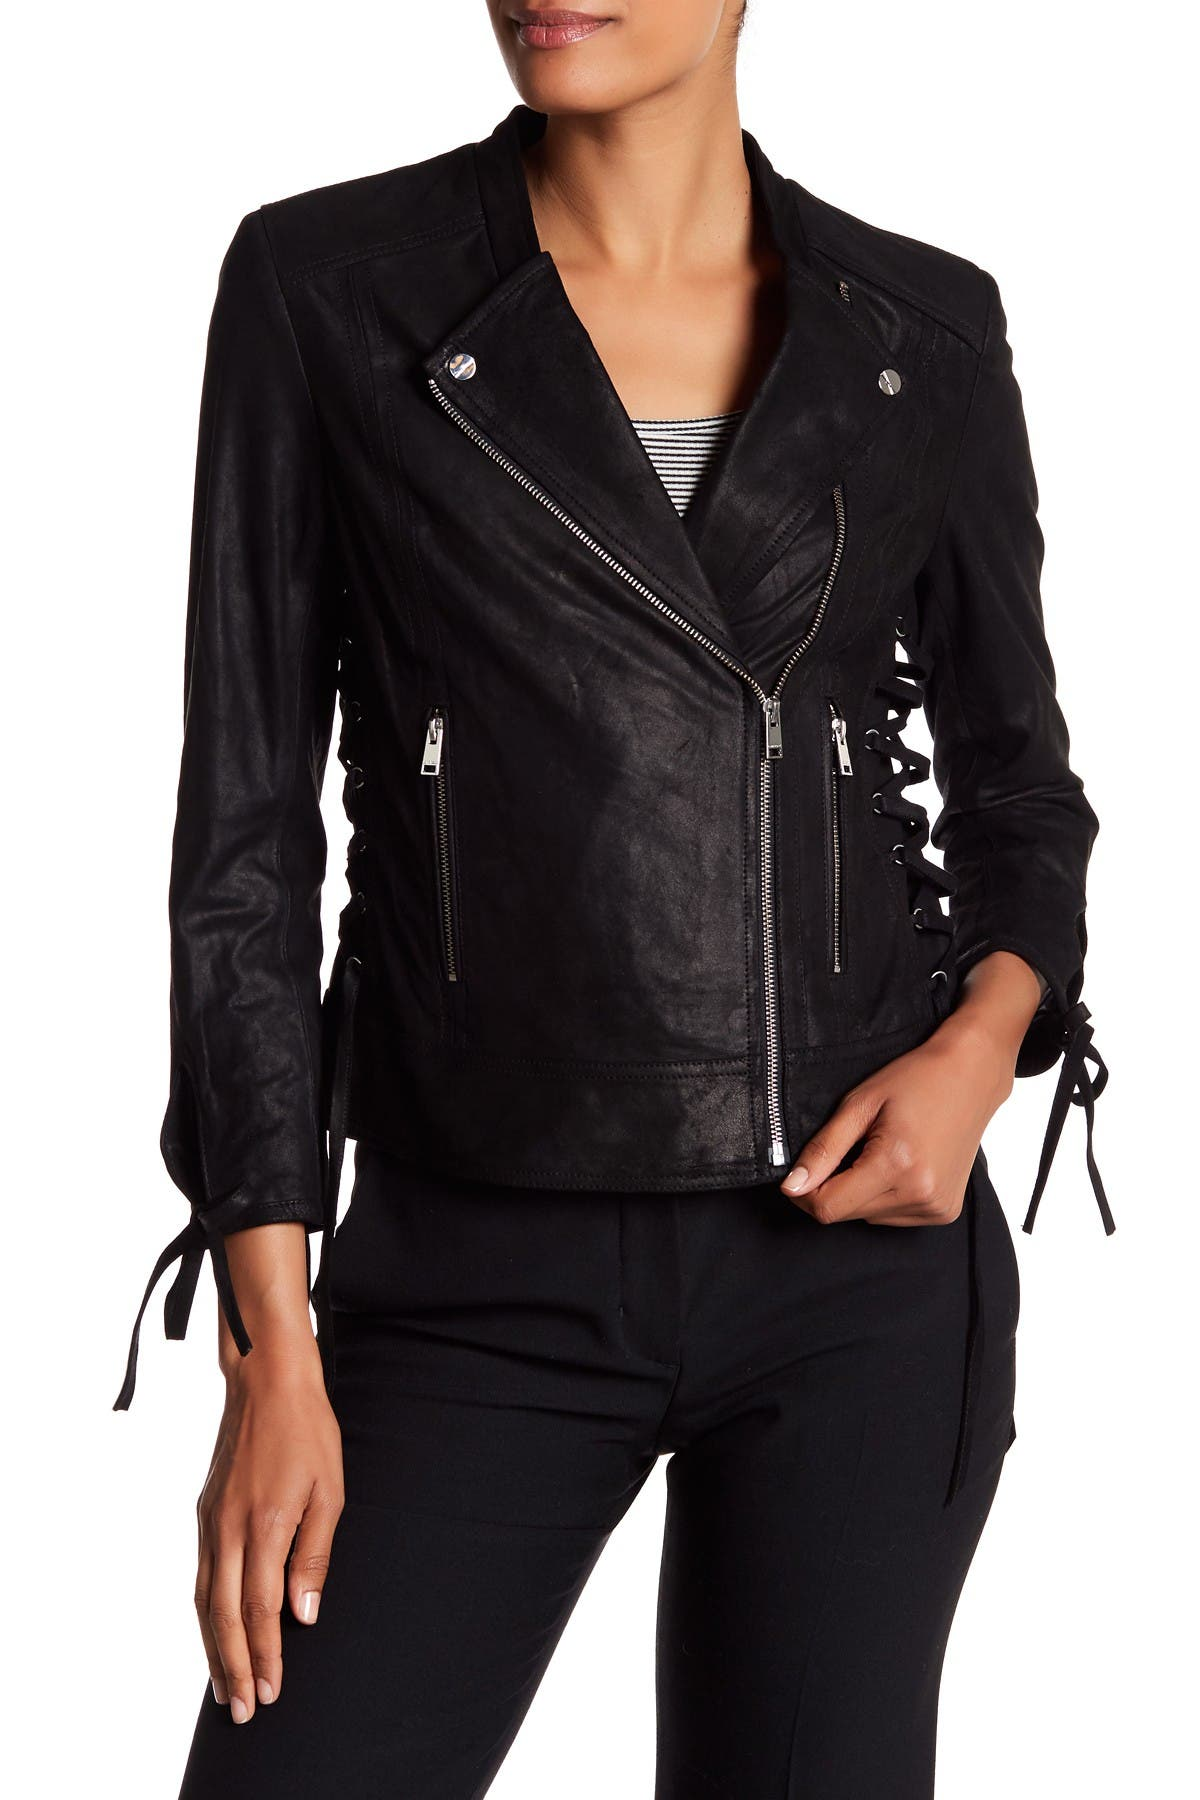 Image of LAMARQUE Rena Lace-Up Genuine Leather Biker Jacket